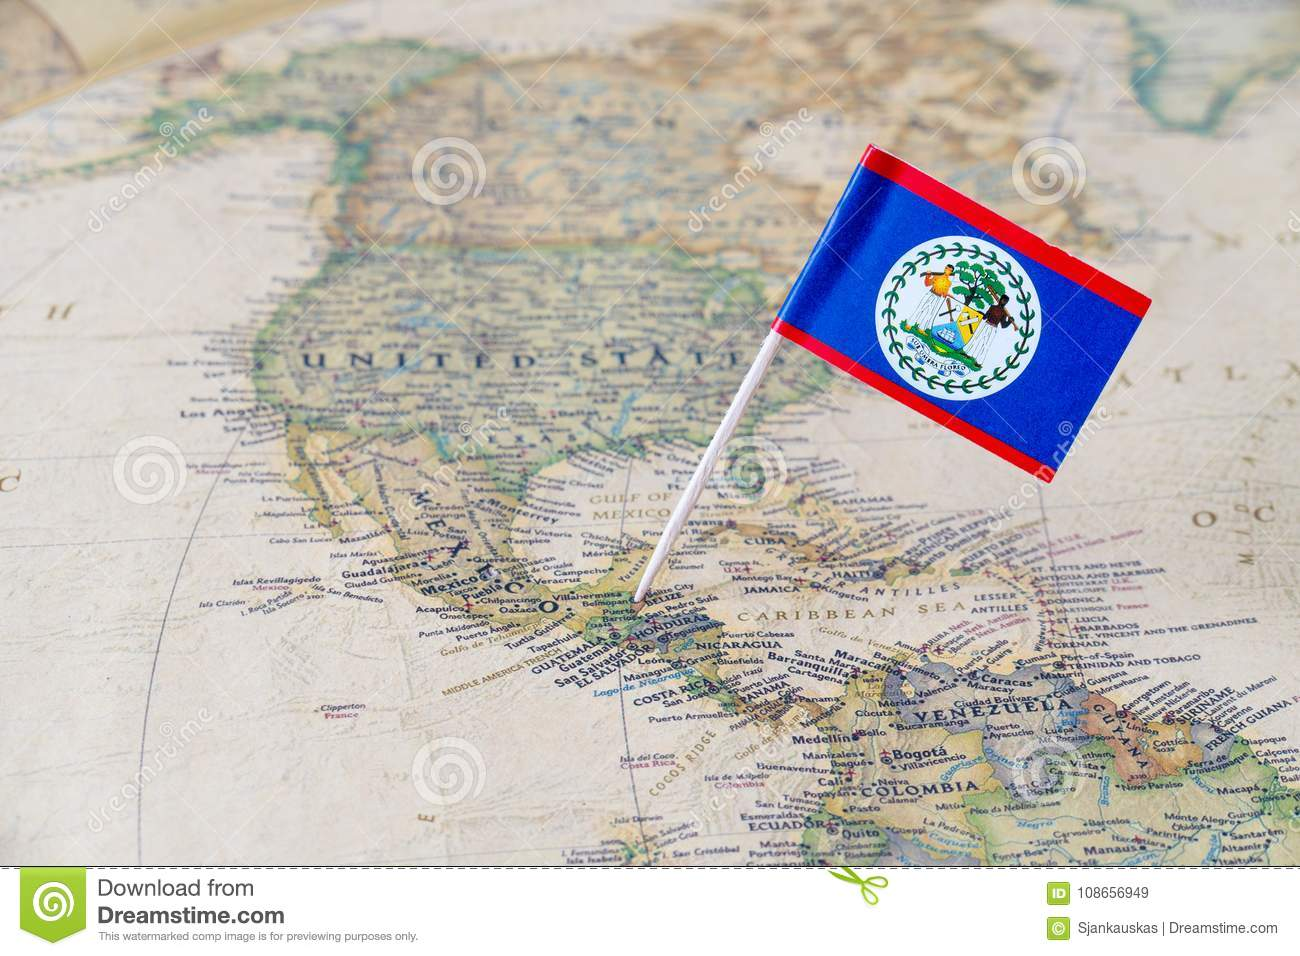 181 Belize Map Photos Free Royalty Free Stock Photos From Dreamstime